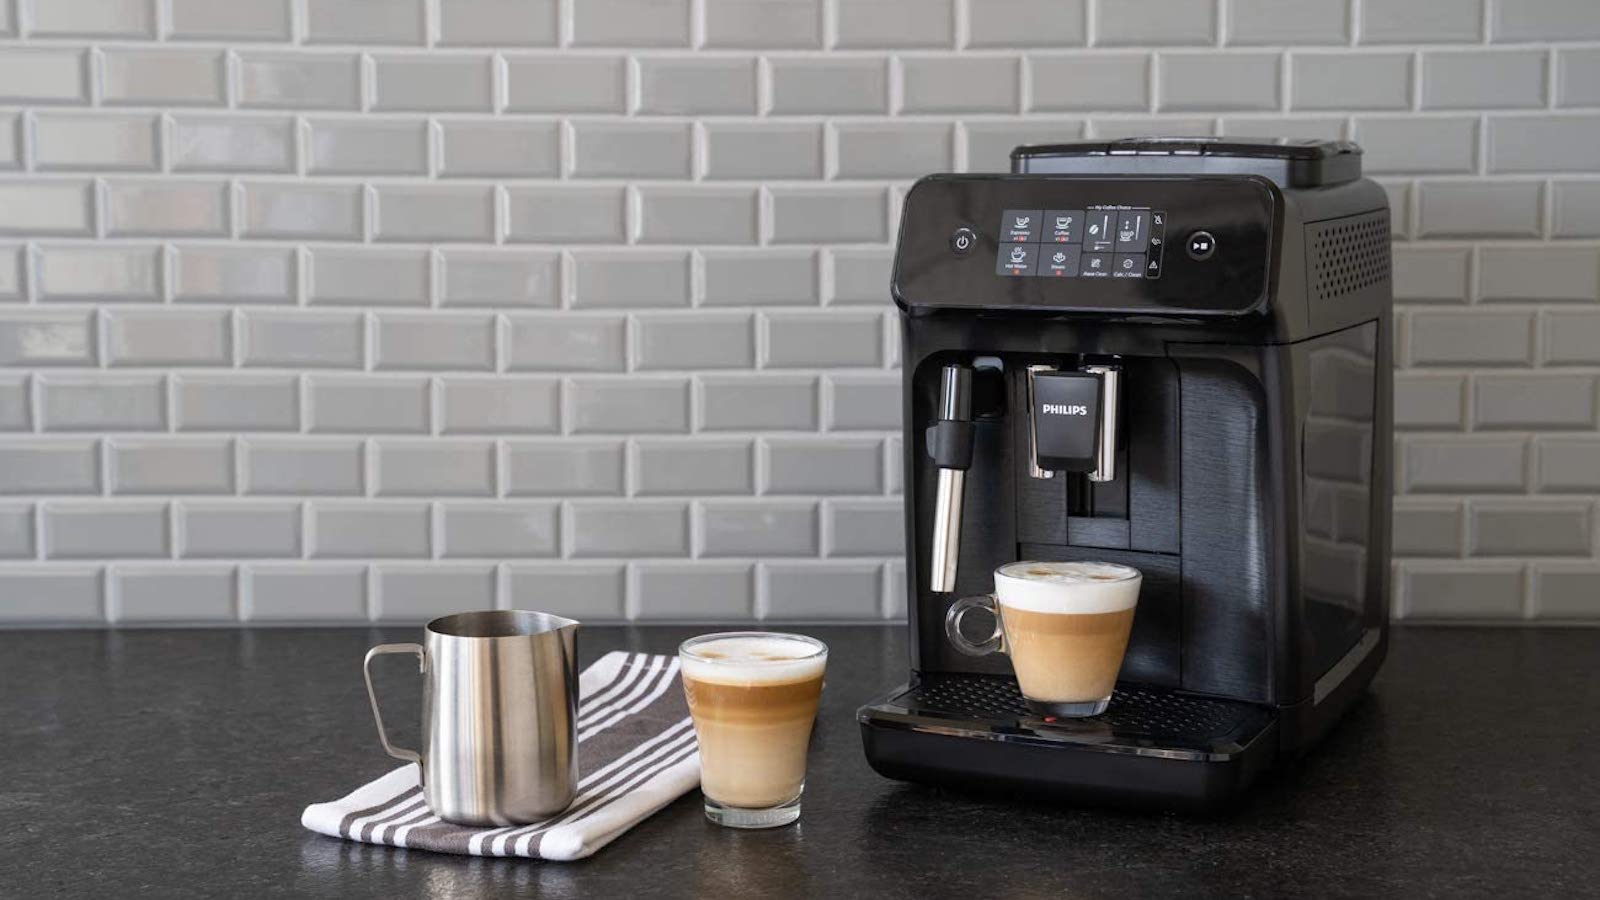 Philips Carina 1200 Series Programmable Espresso Machine creates a silky smooth coffee